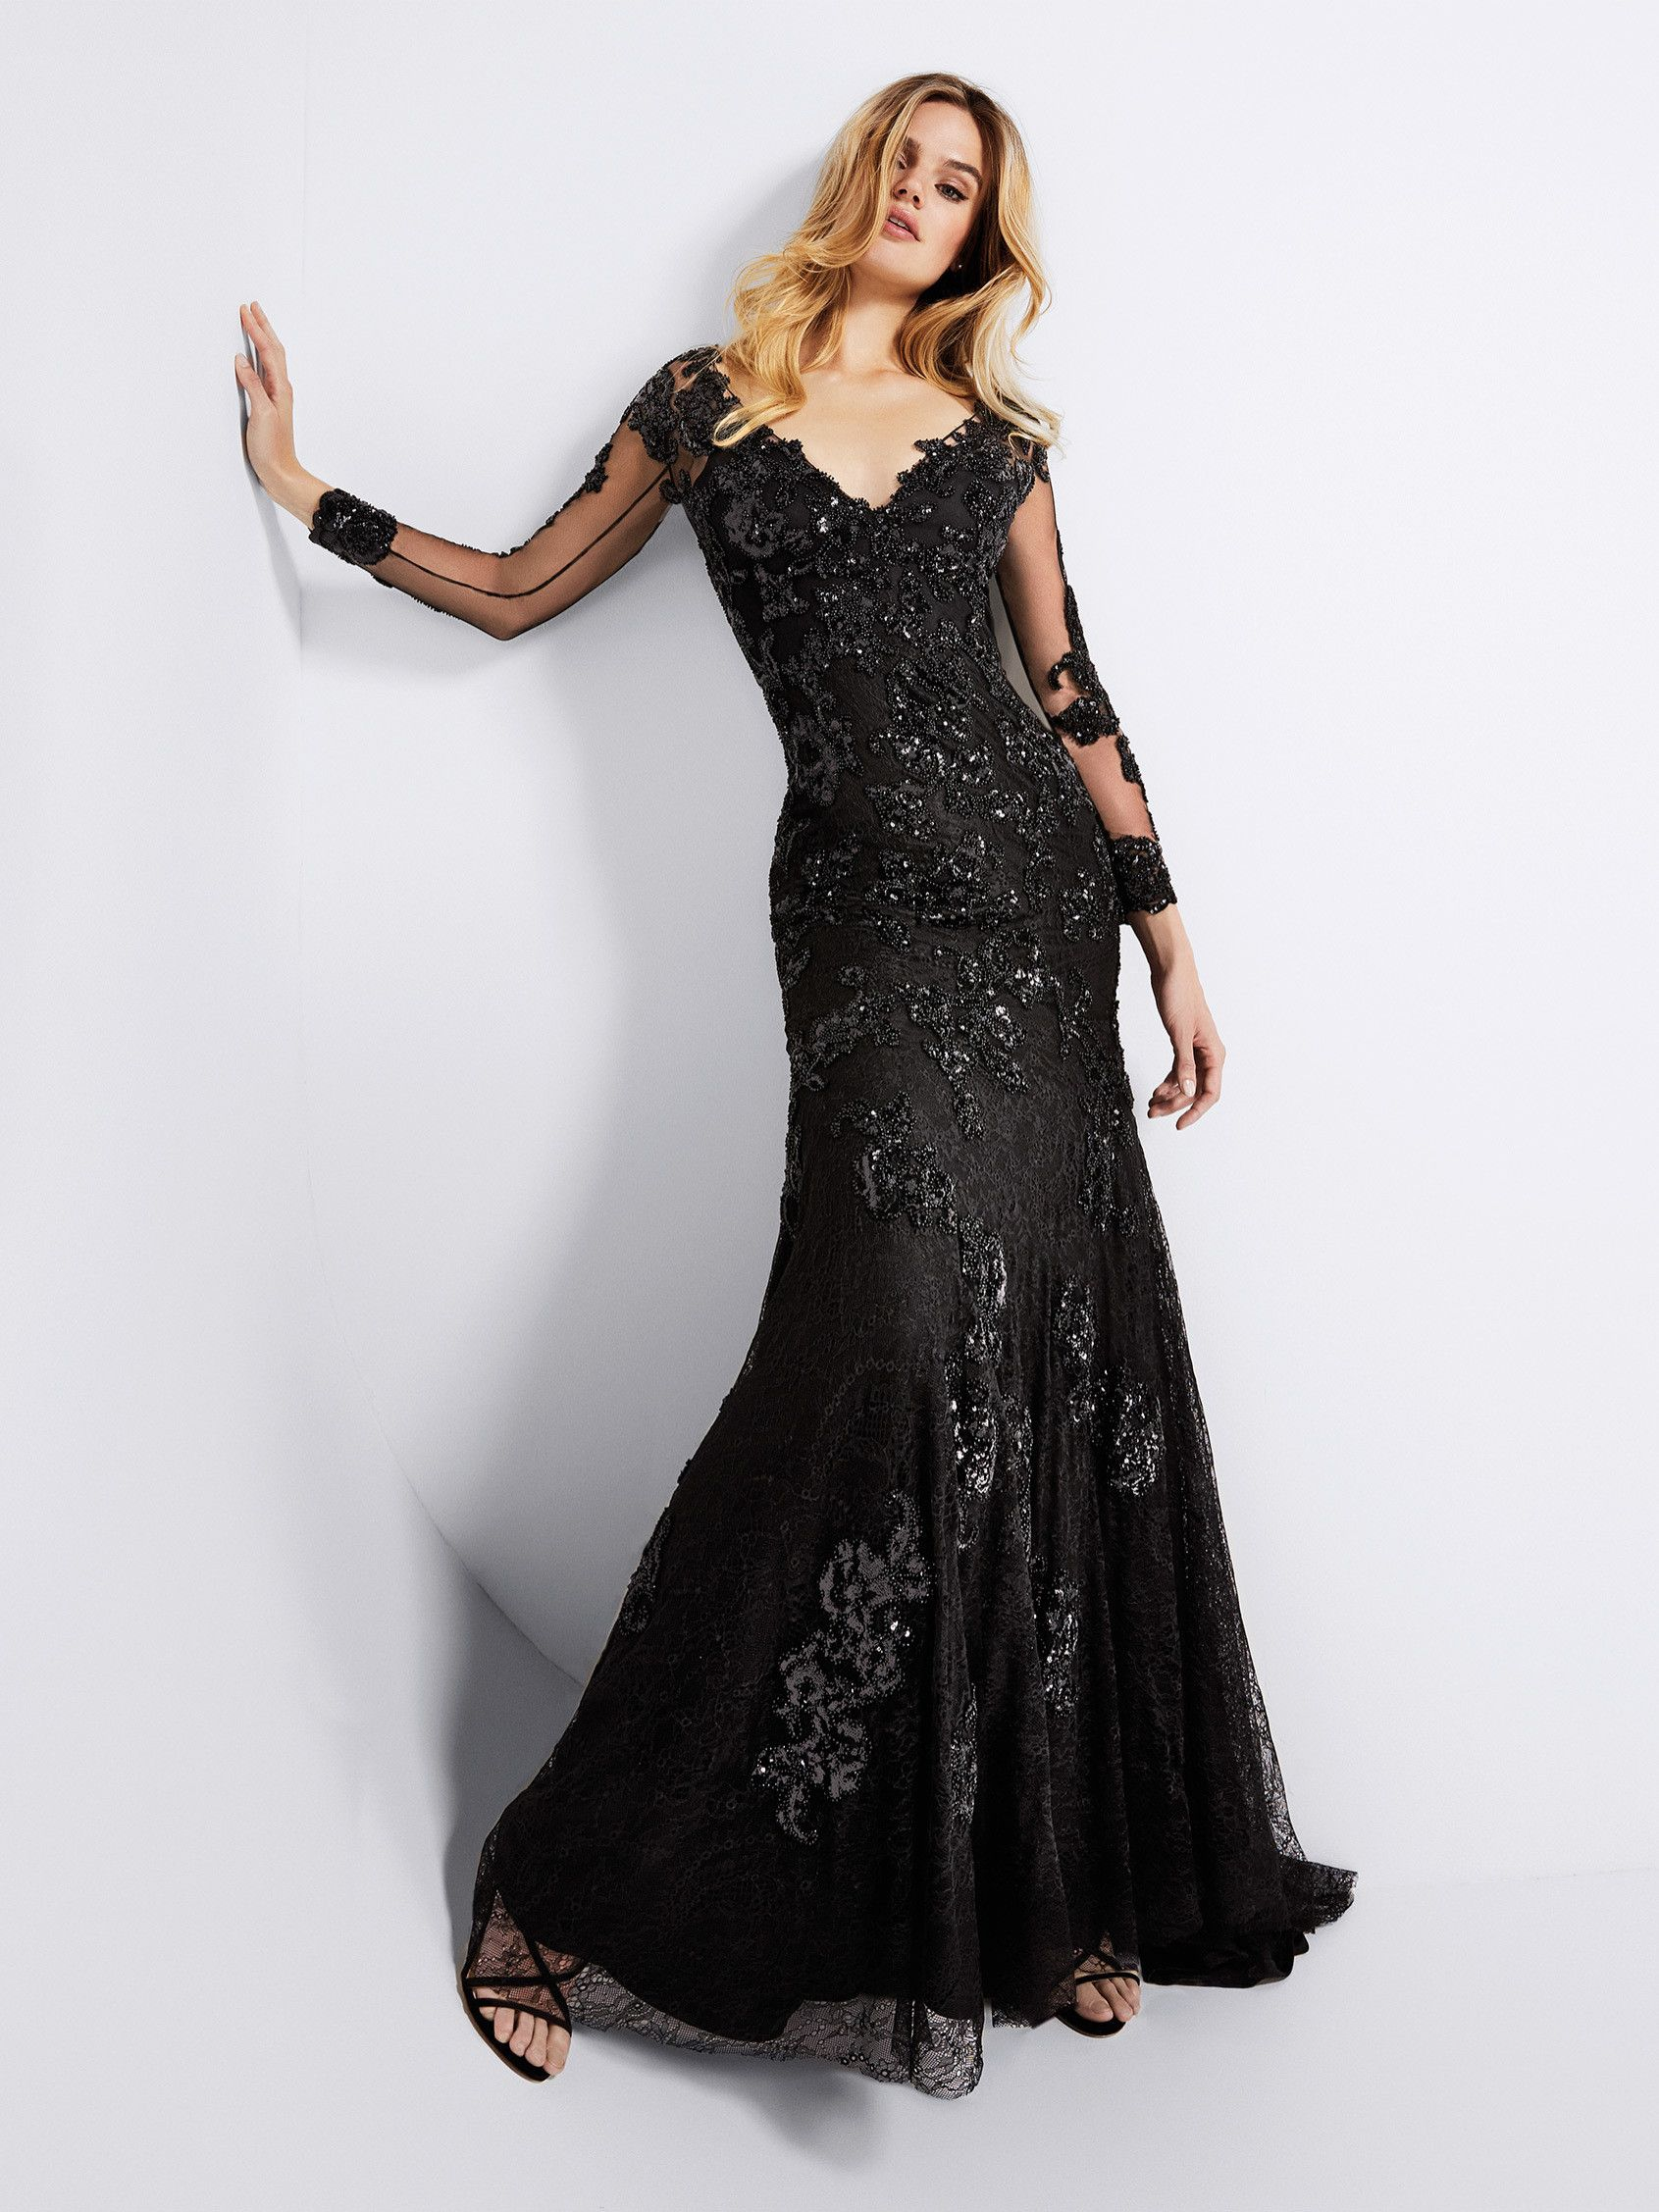 Black Gown Evening Wedding Dresses Cocktail Bridesmaid Dresses Sophisticated Dress